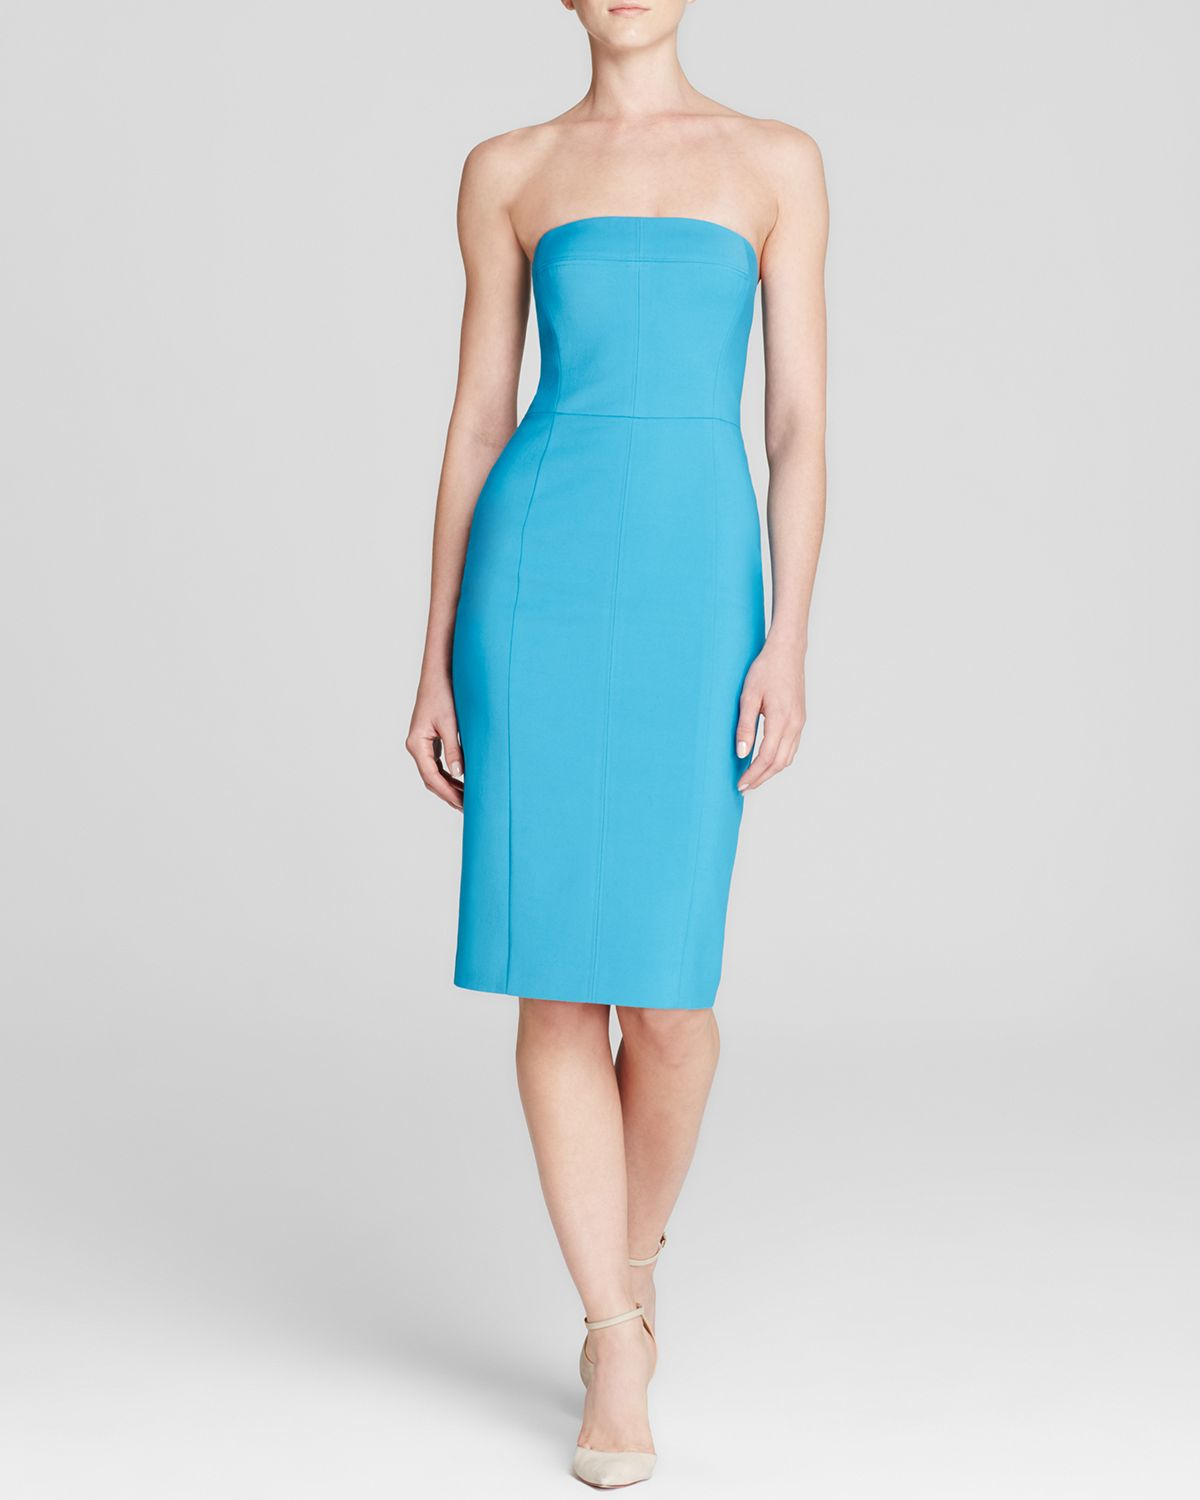 Black halo Olsen Strapless Sheath Dress in Blue | Lyst